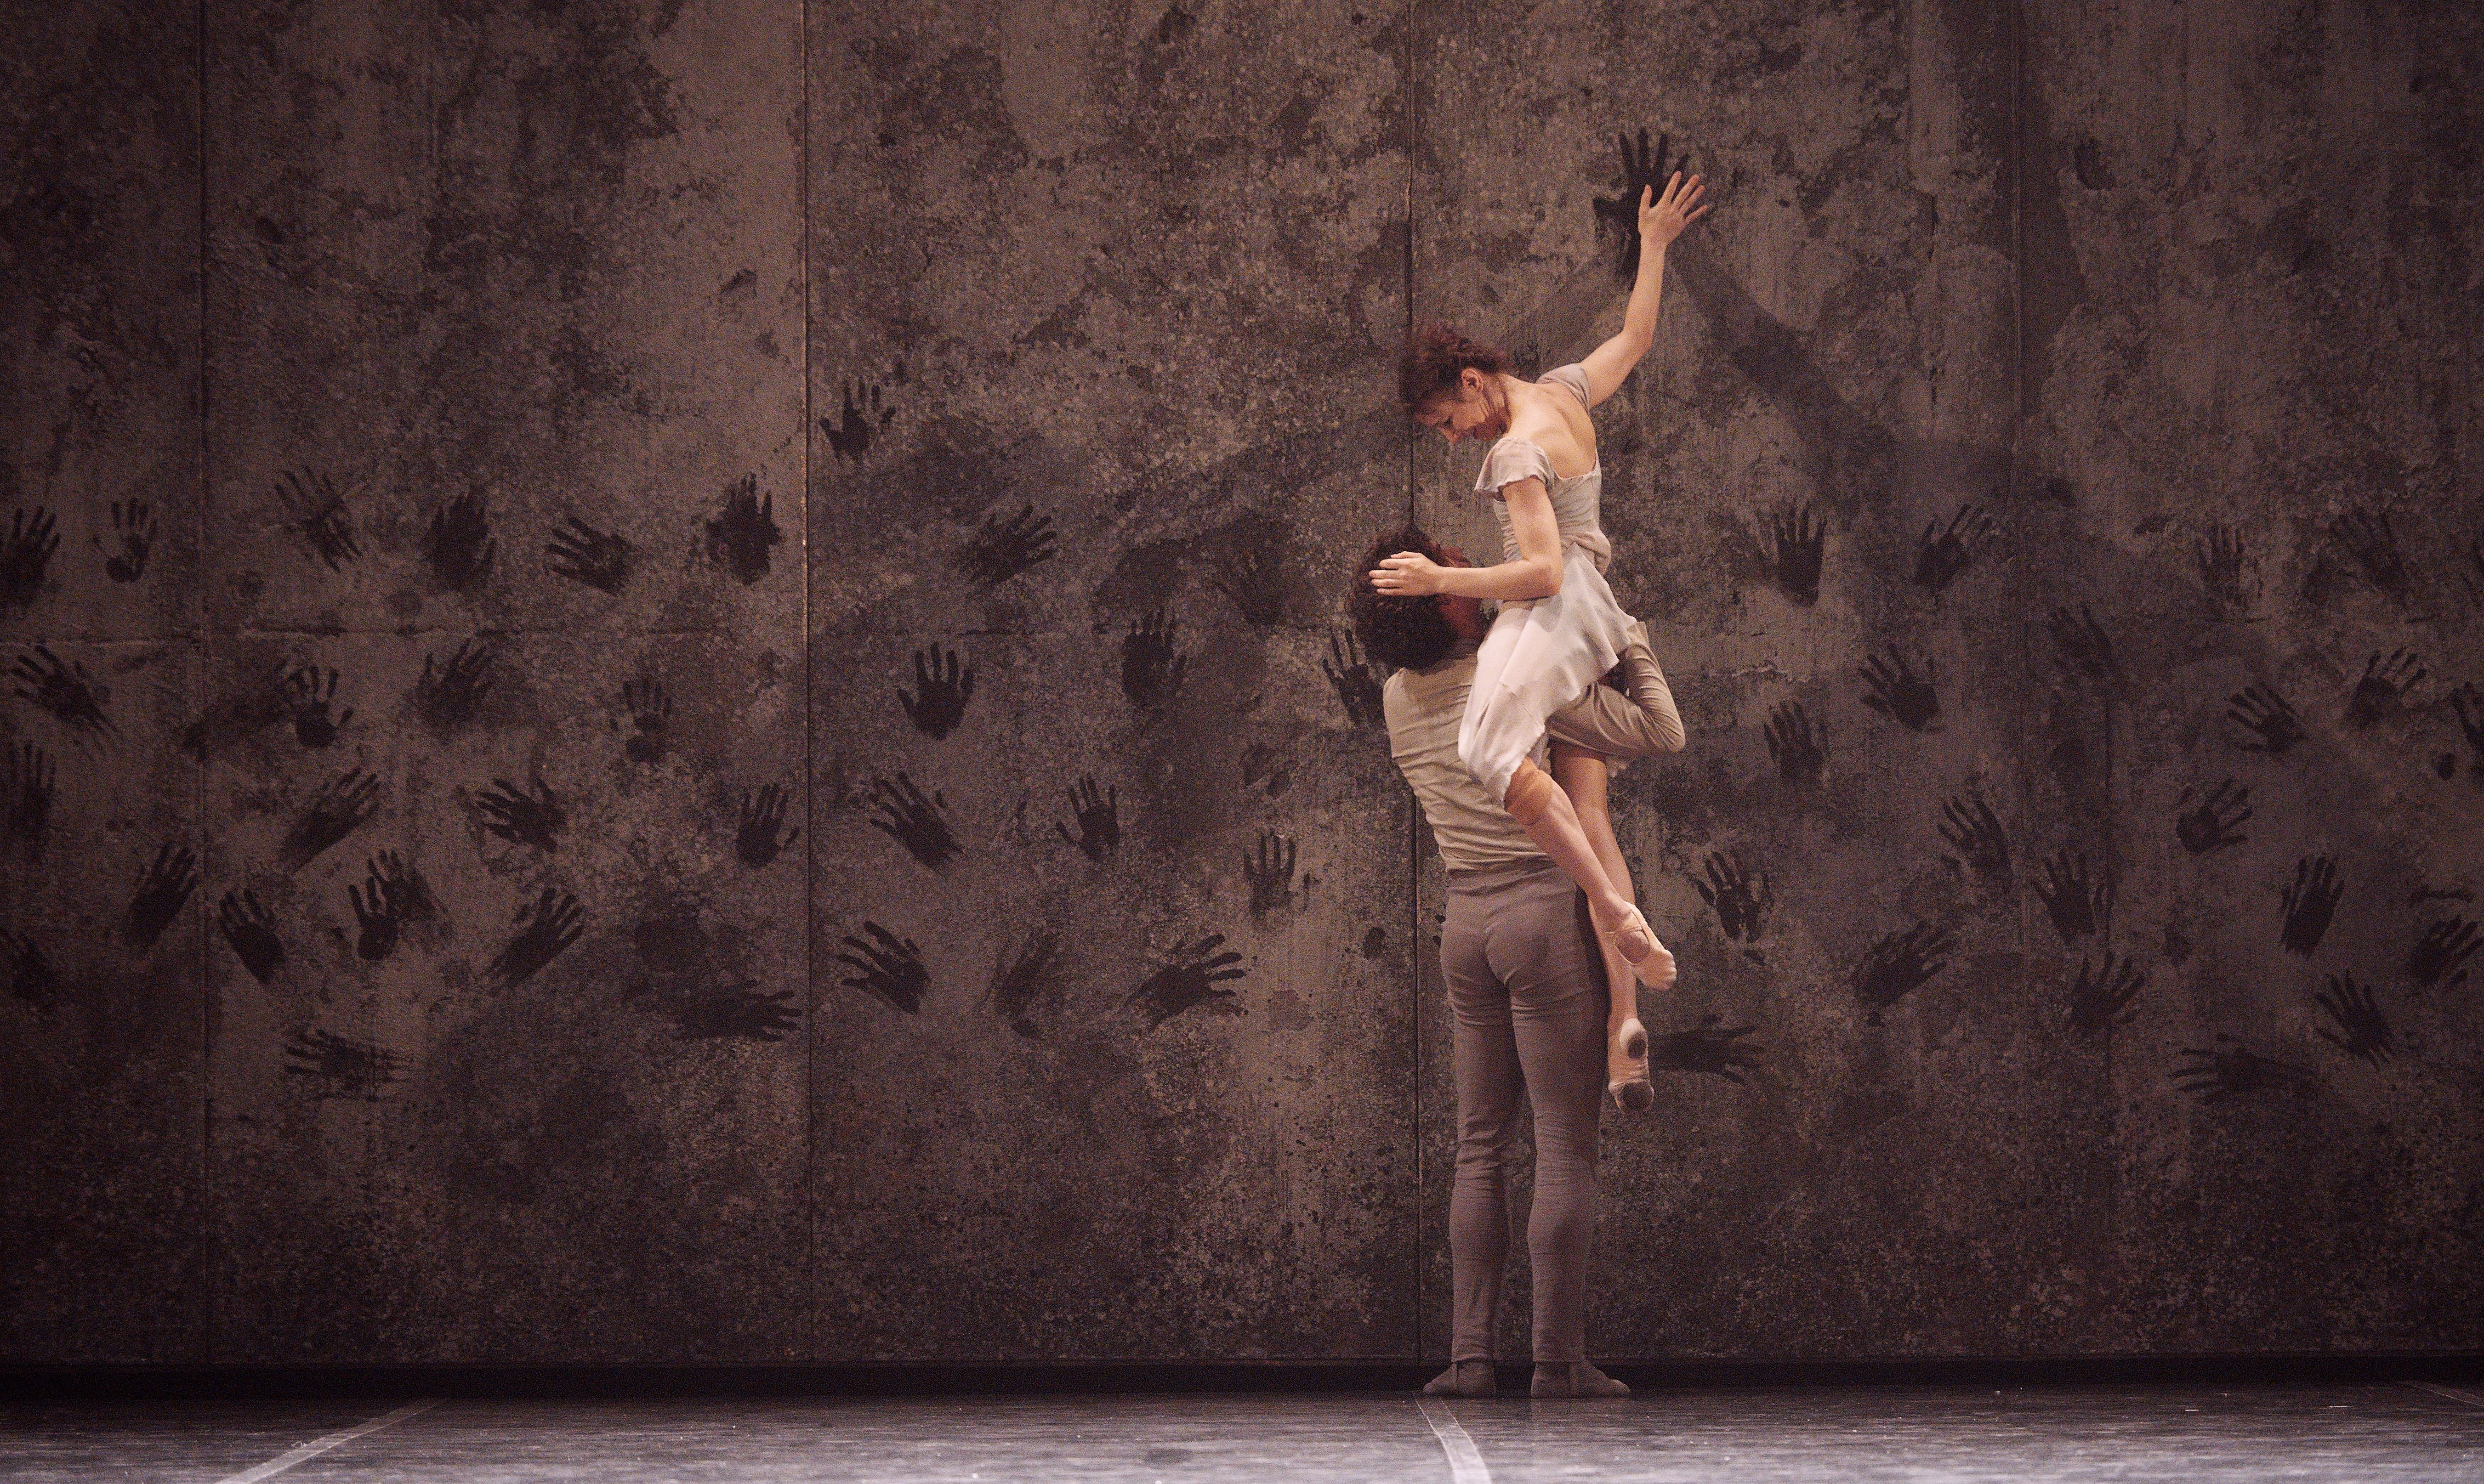 English National Ballet dancers Alina Cojocaru and Isaac Hernandez in Akram Khan's Giselle.